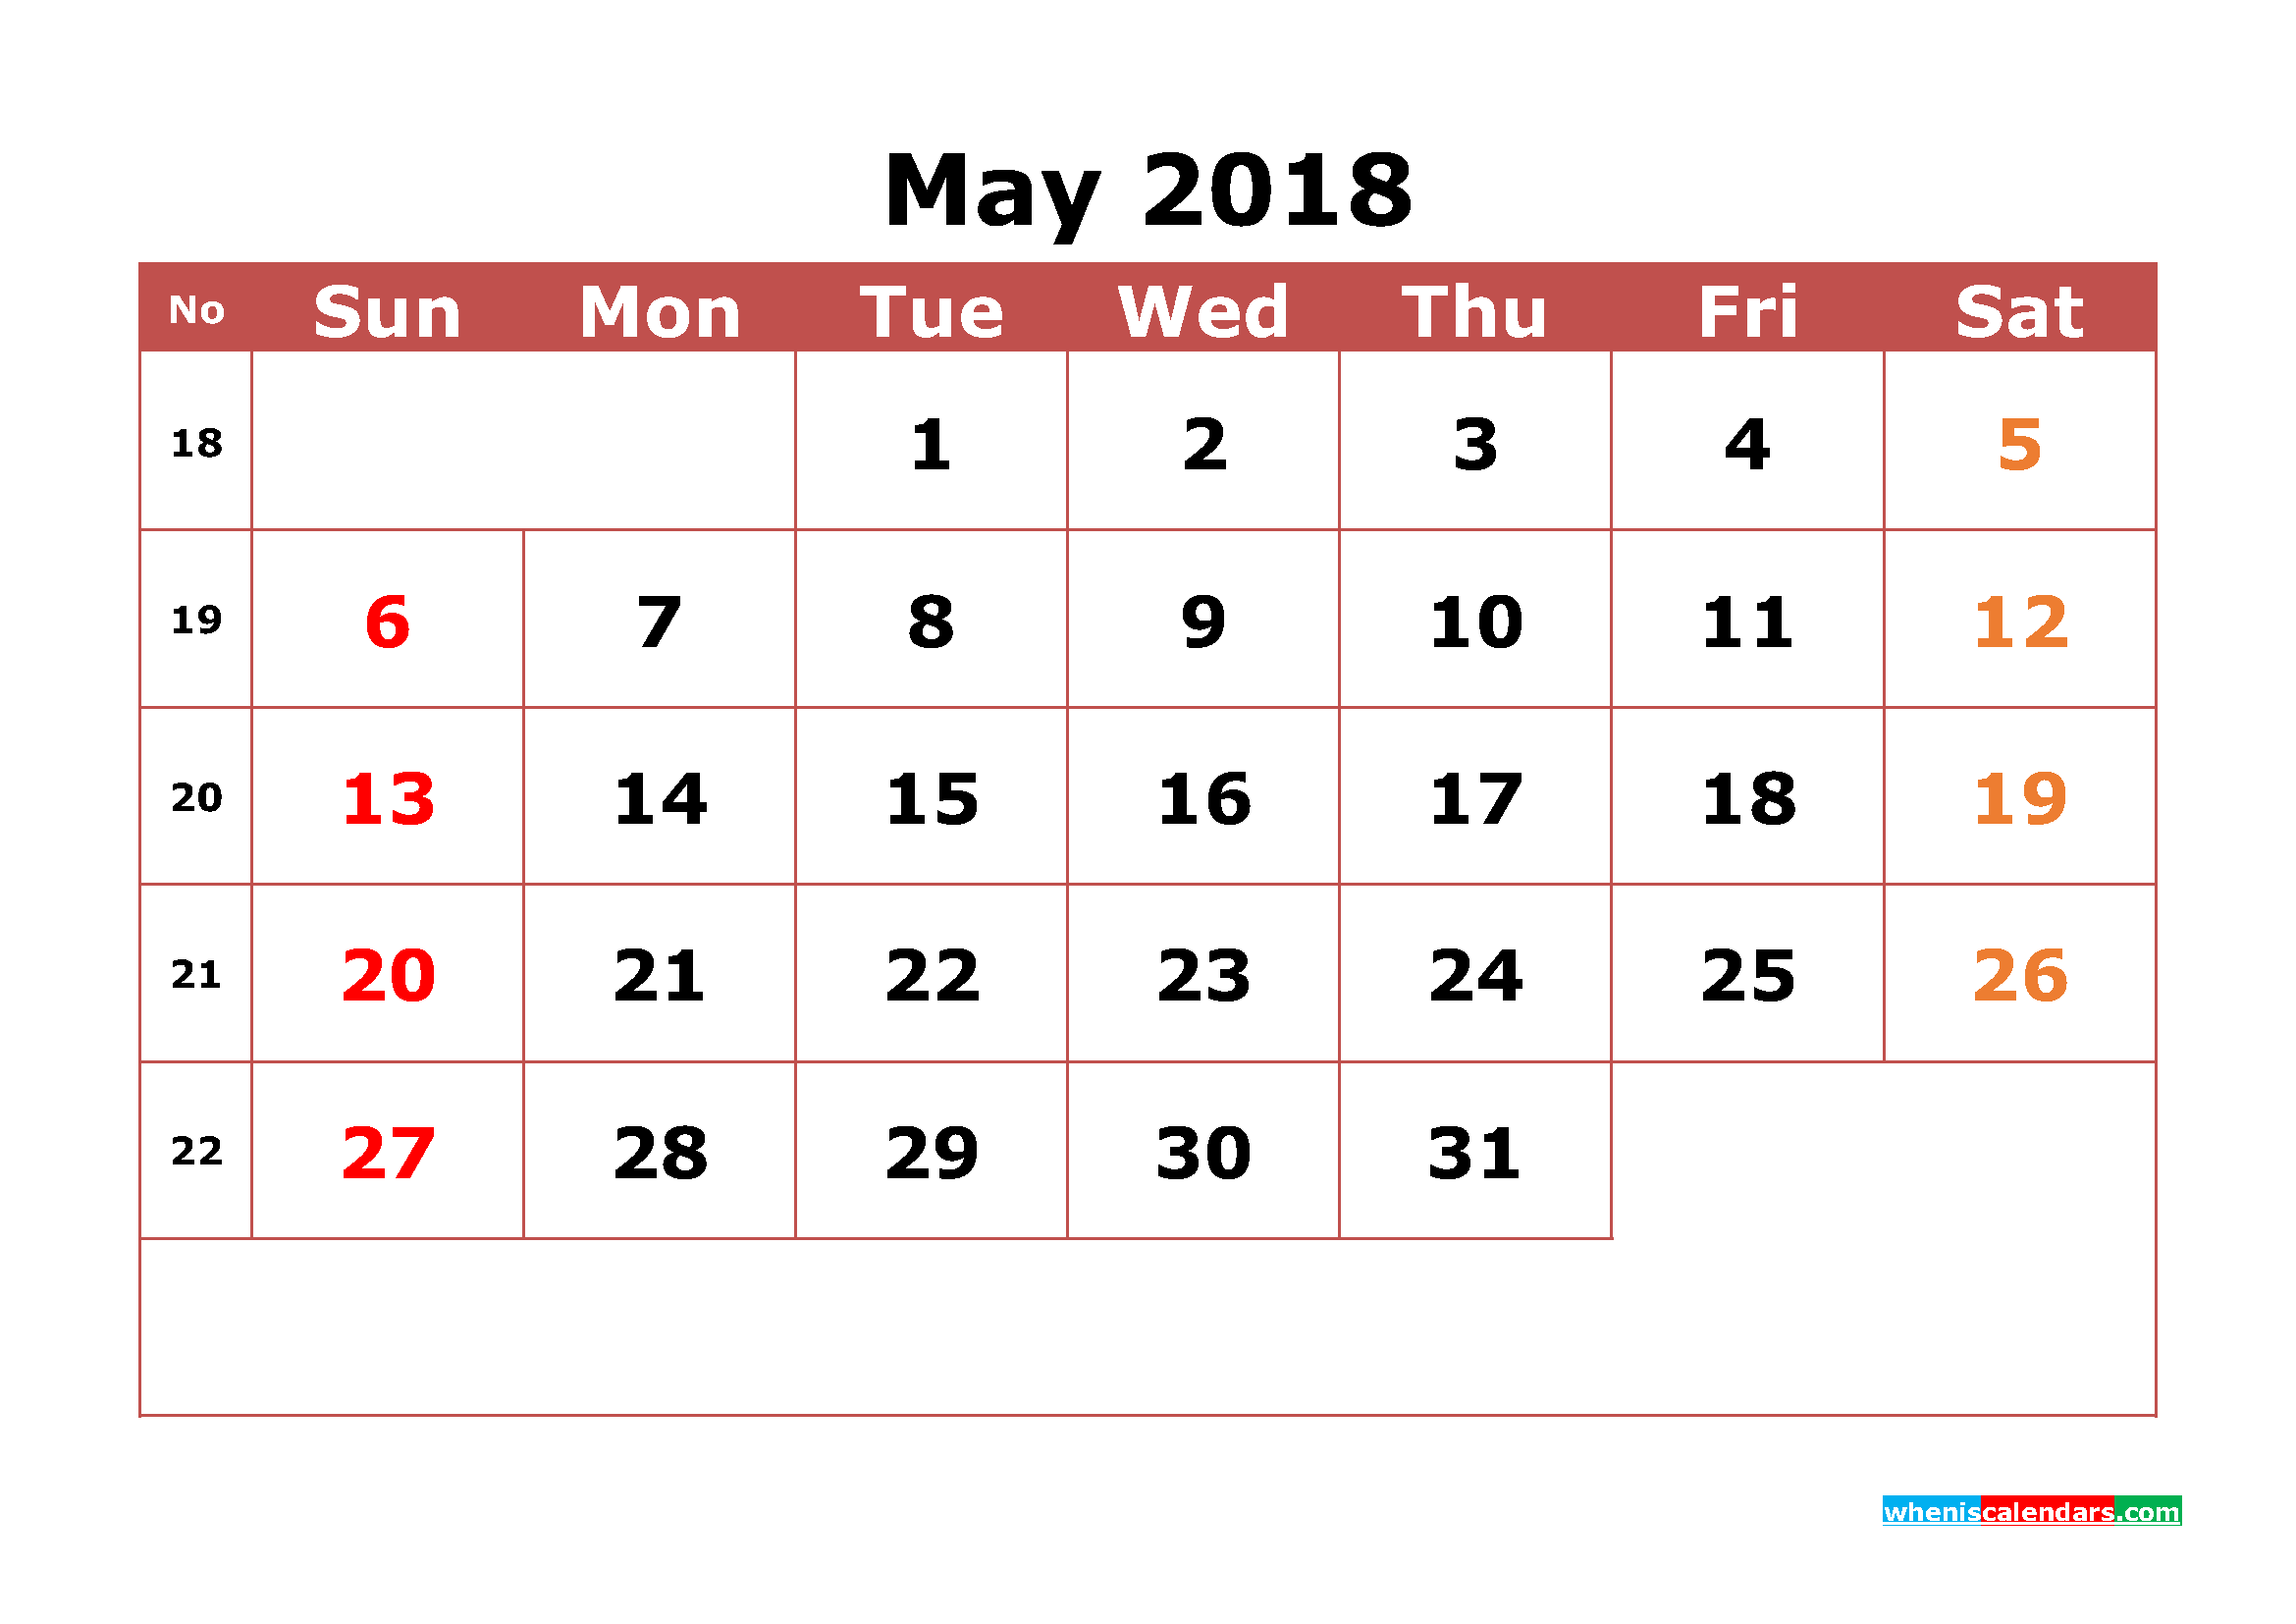 May 2018 Calendar Printable with Week Numbers Image